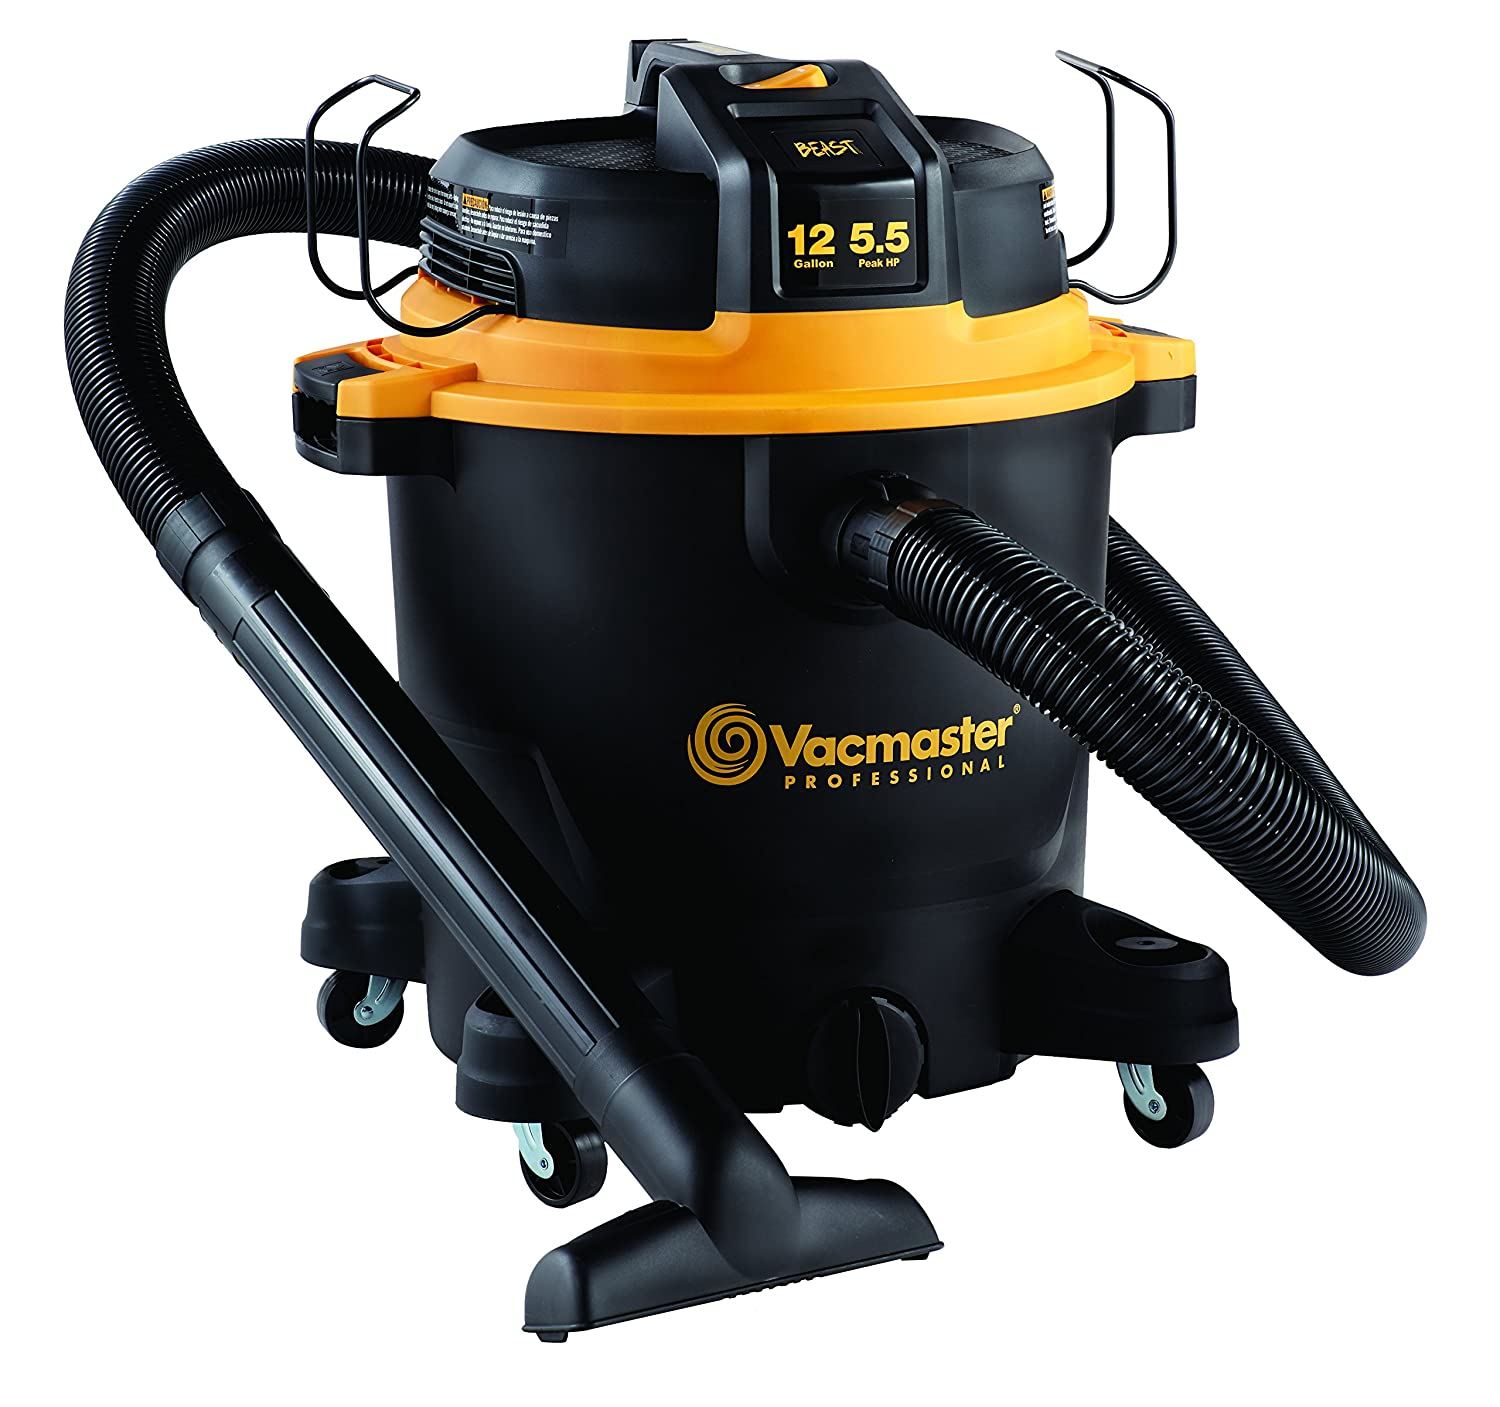 Vacmaster Professional - Professional Wet/Dry Vac, 12 Gallon, Beast Series, 5.5 HP 2-1/2-inch Hose VJH1211PF0201